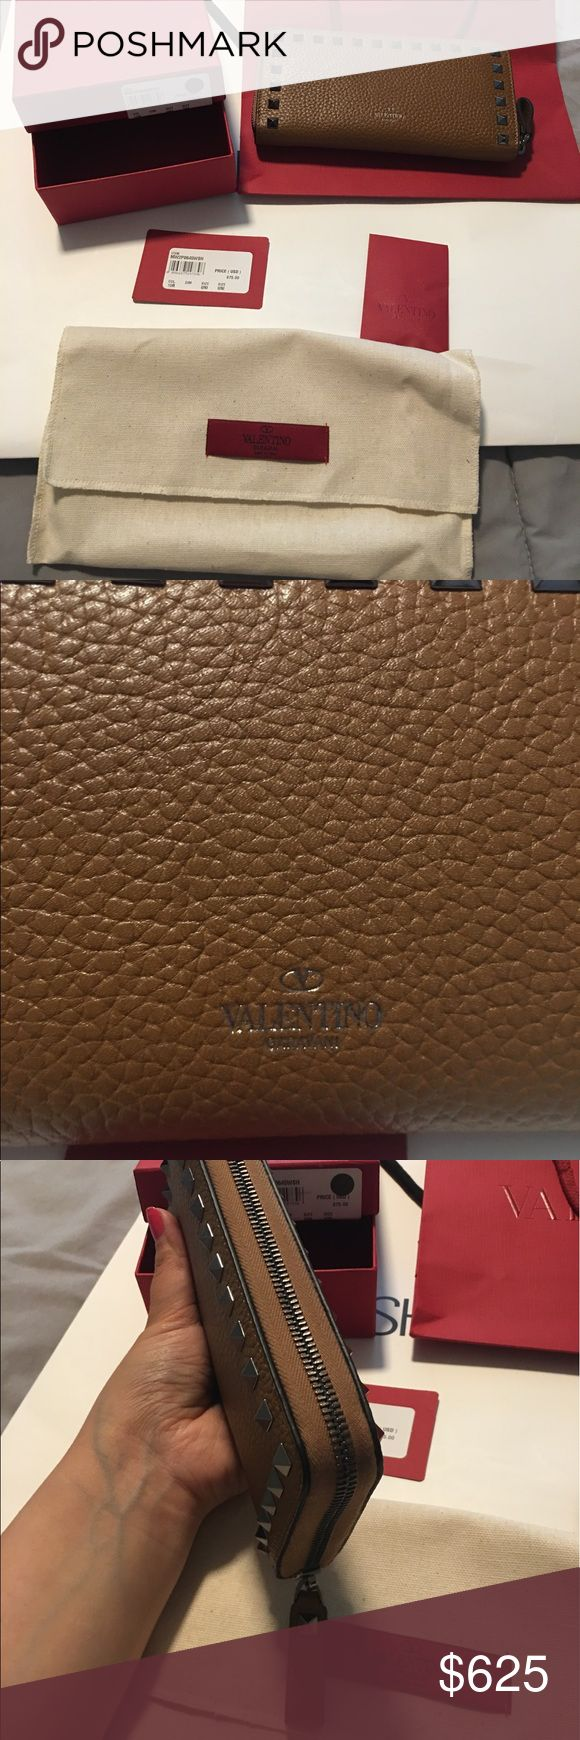 Valentino wallet Brand new and comes with original packaging Valentino Bags Wallets